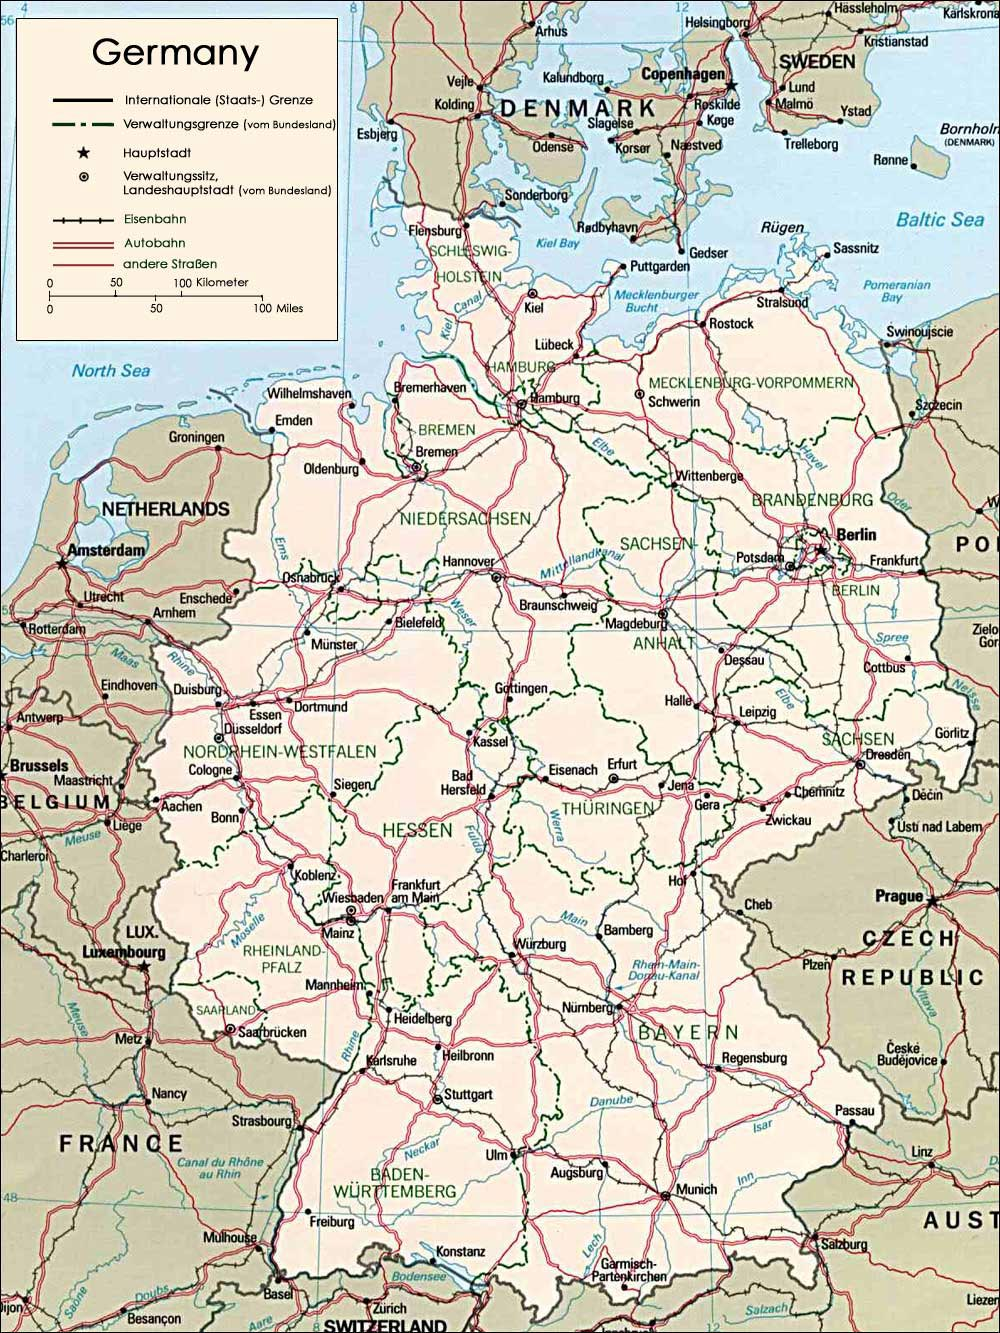 Printable Map Of Germany.Germany Maps Printable Maps Of Germany For Download